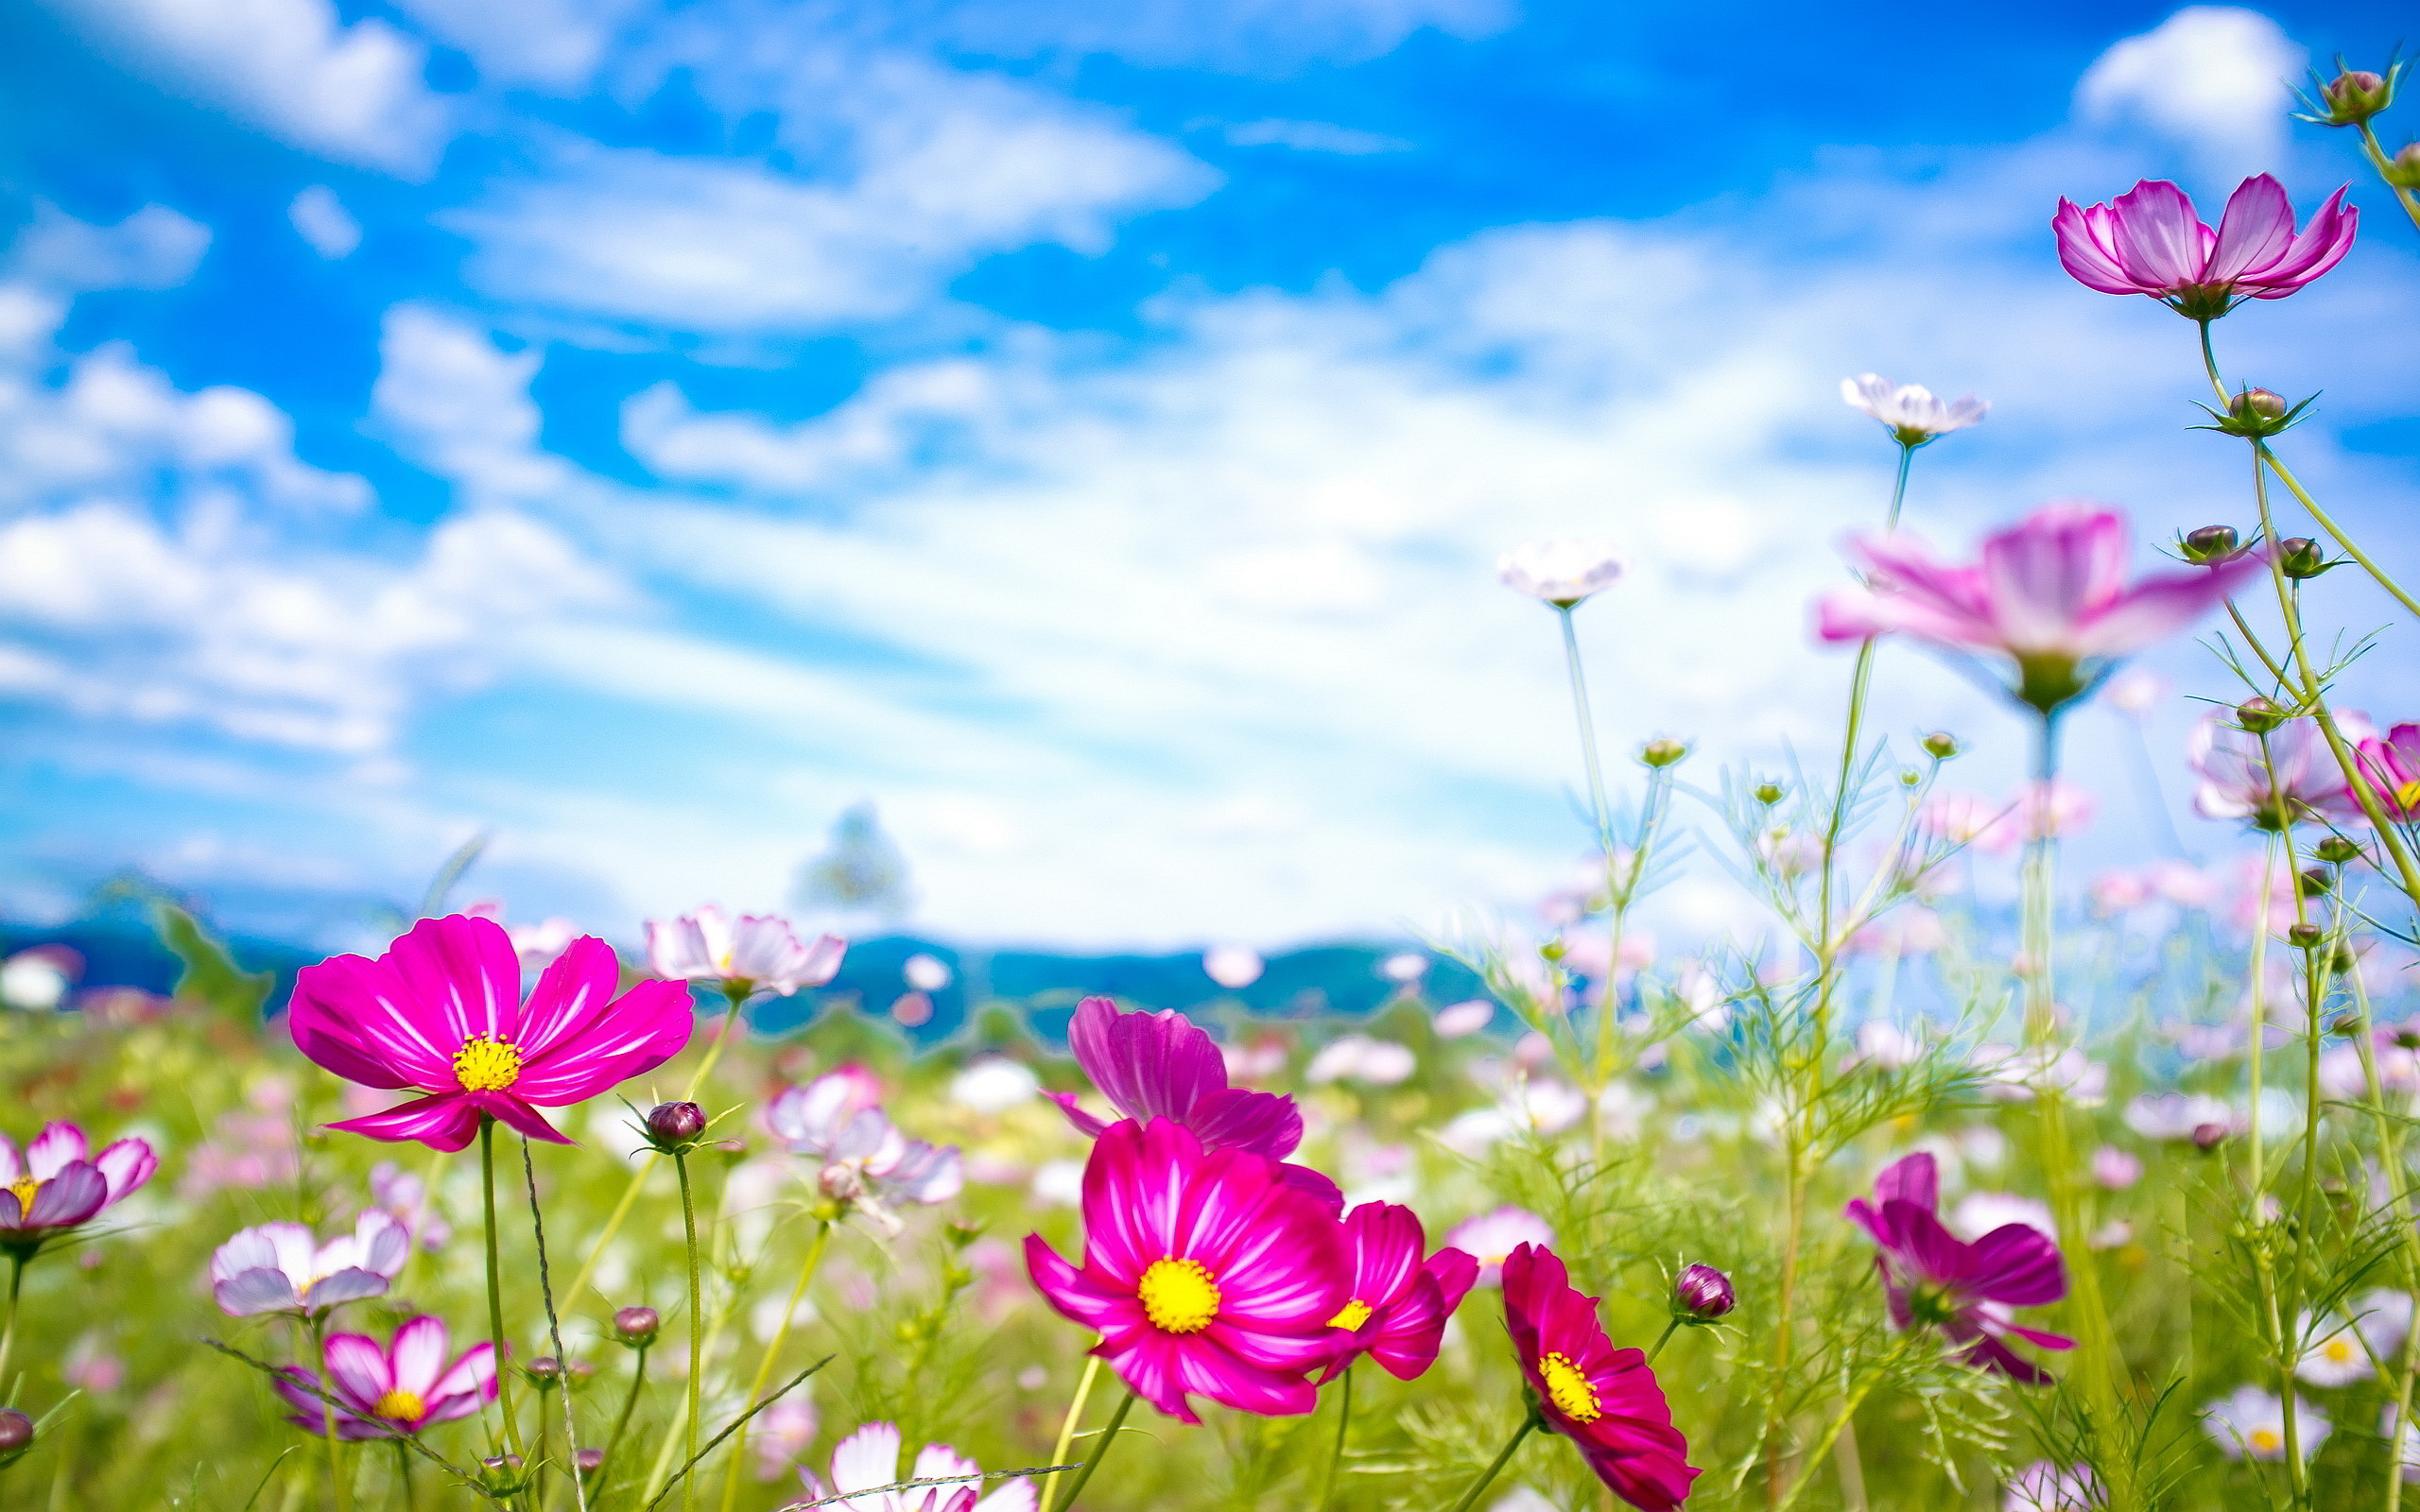 Free Picnic Wallpapers, Best Free Picnic Wallpapers in High.